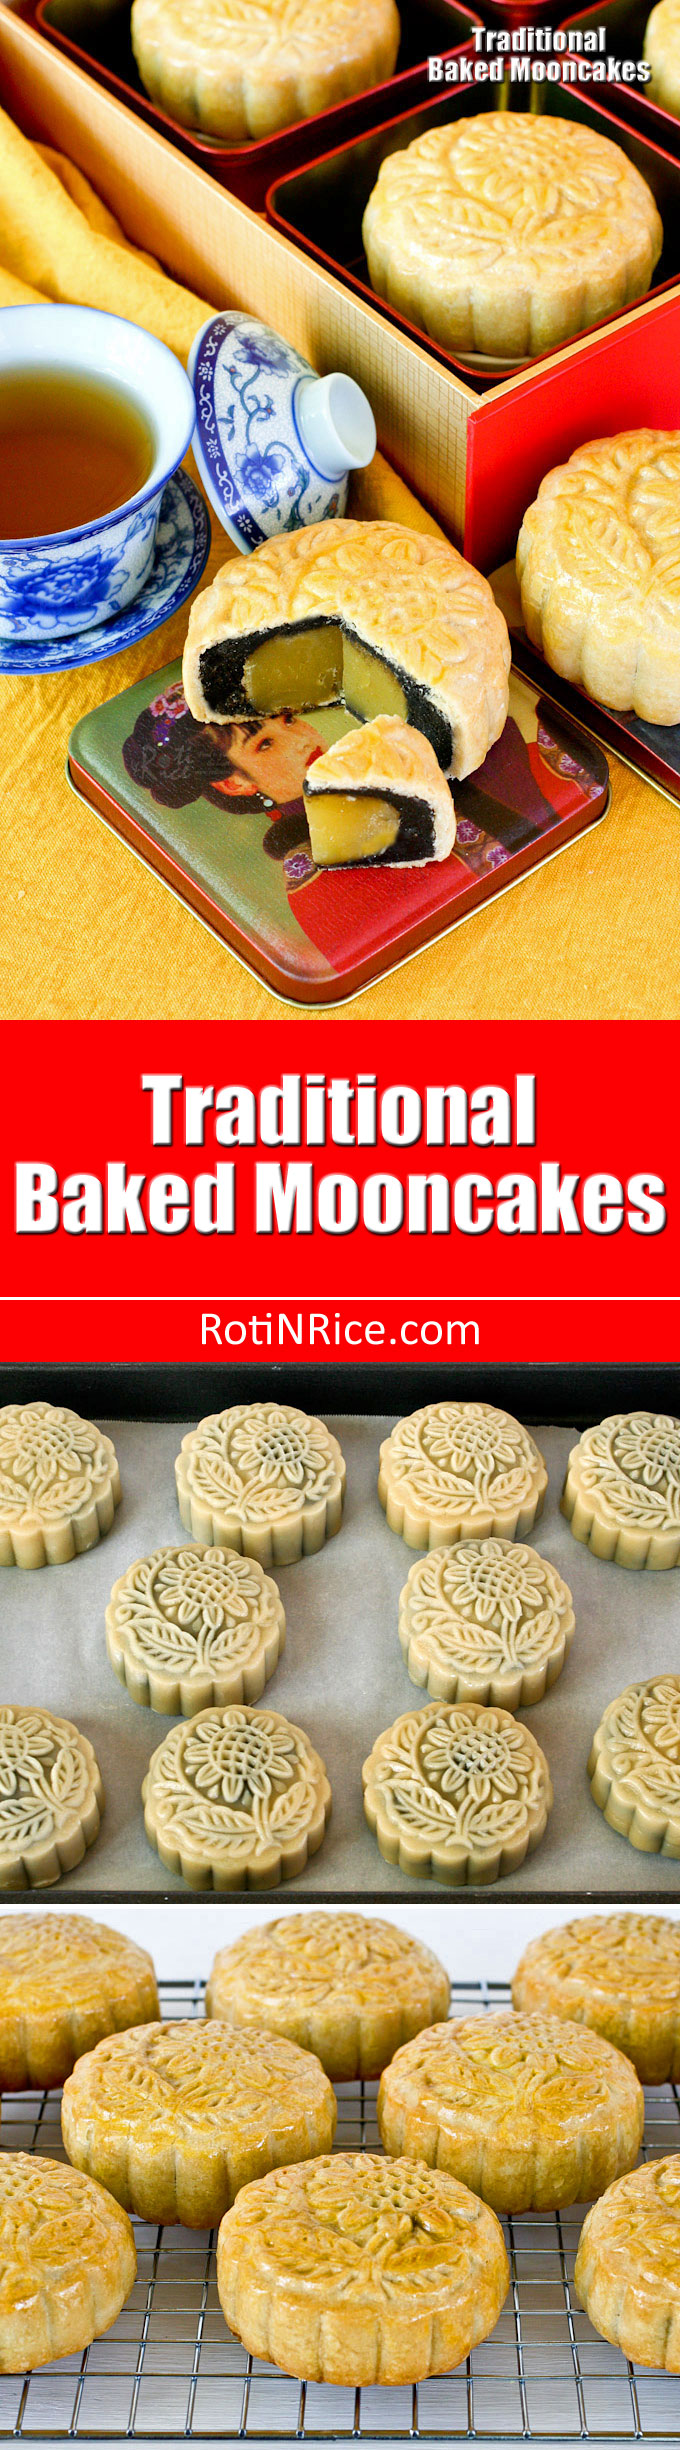 Traditional Baked Mooncakes